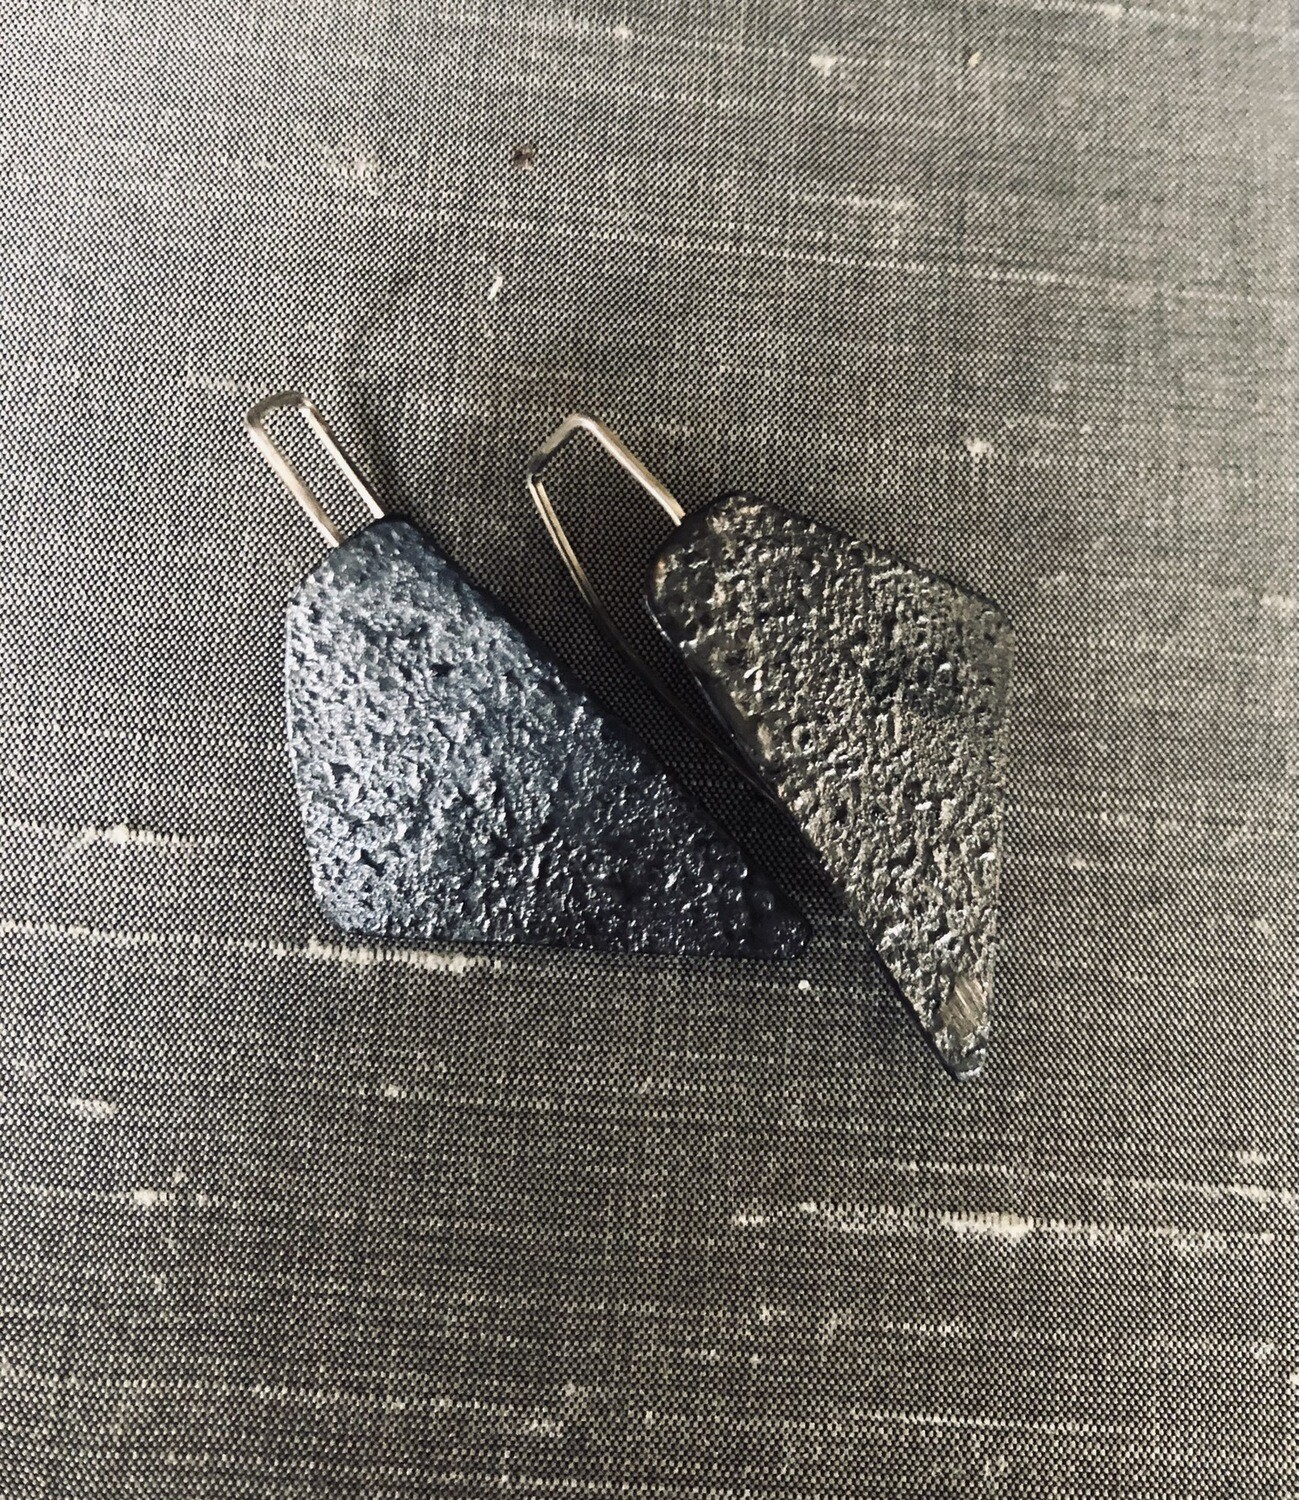 Reticulated Copper Earrings SOLD